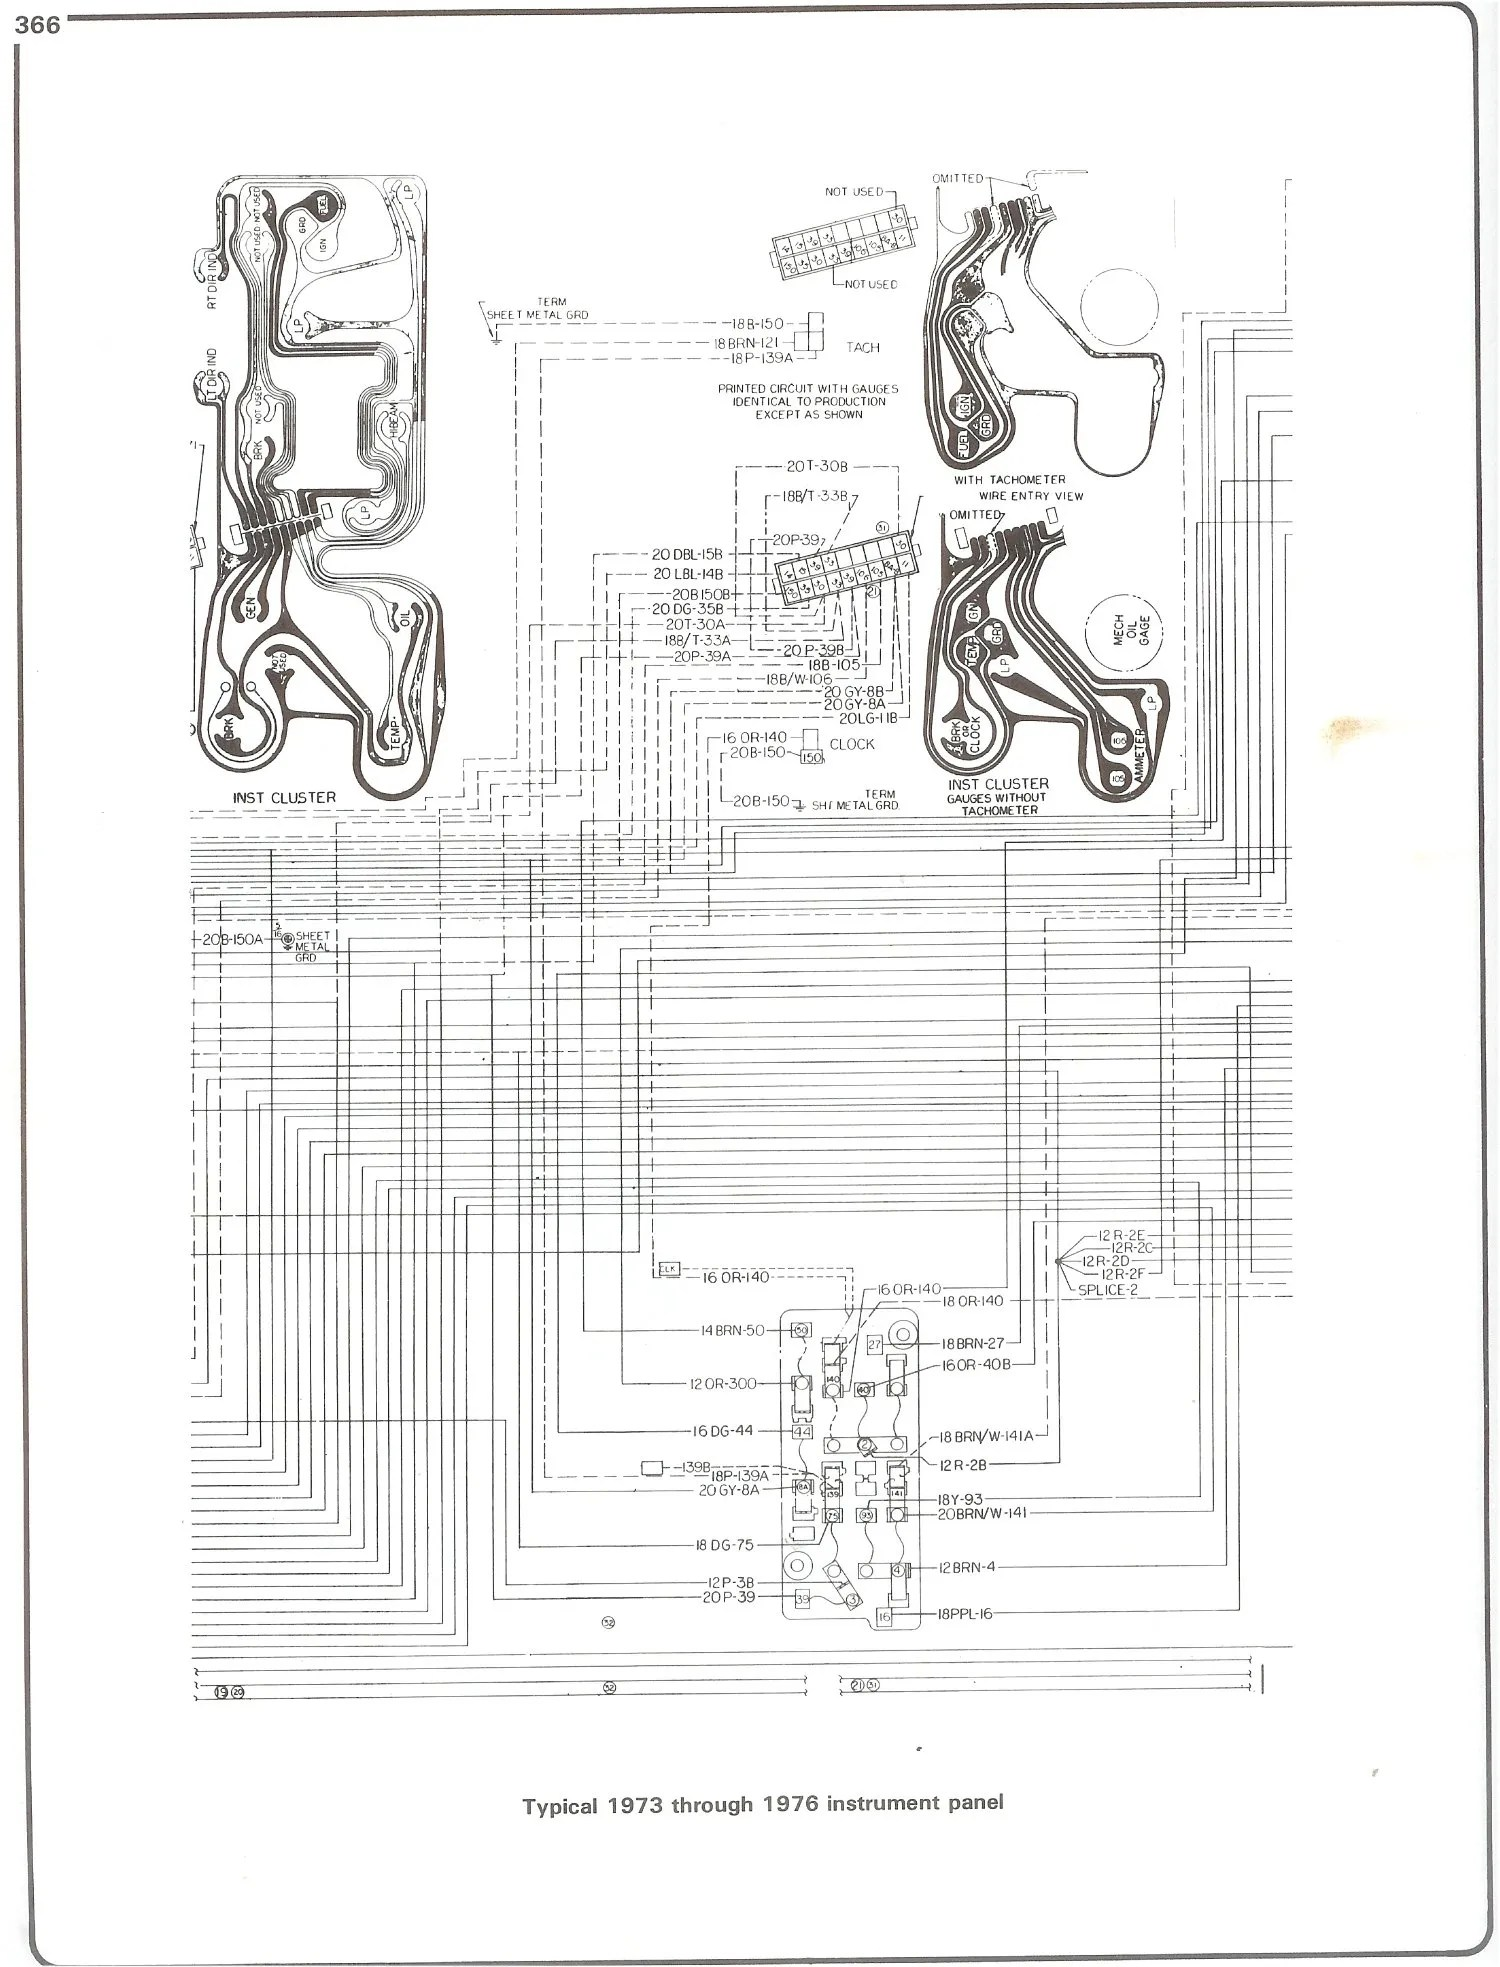 hight resolution of 83 chevy truck wiring diagram wiring diagram user 83 chevy truck wiring diagram